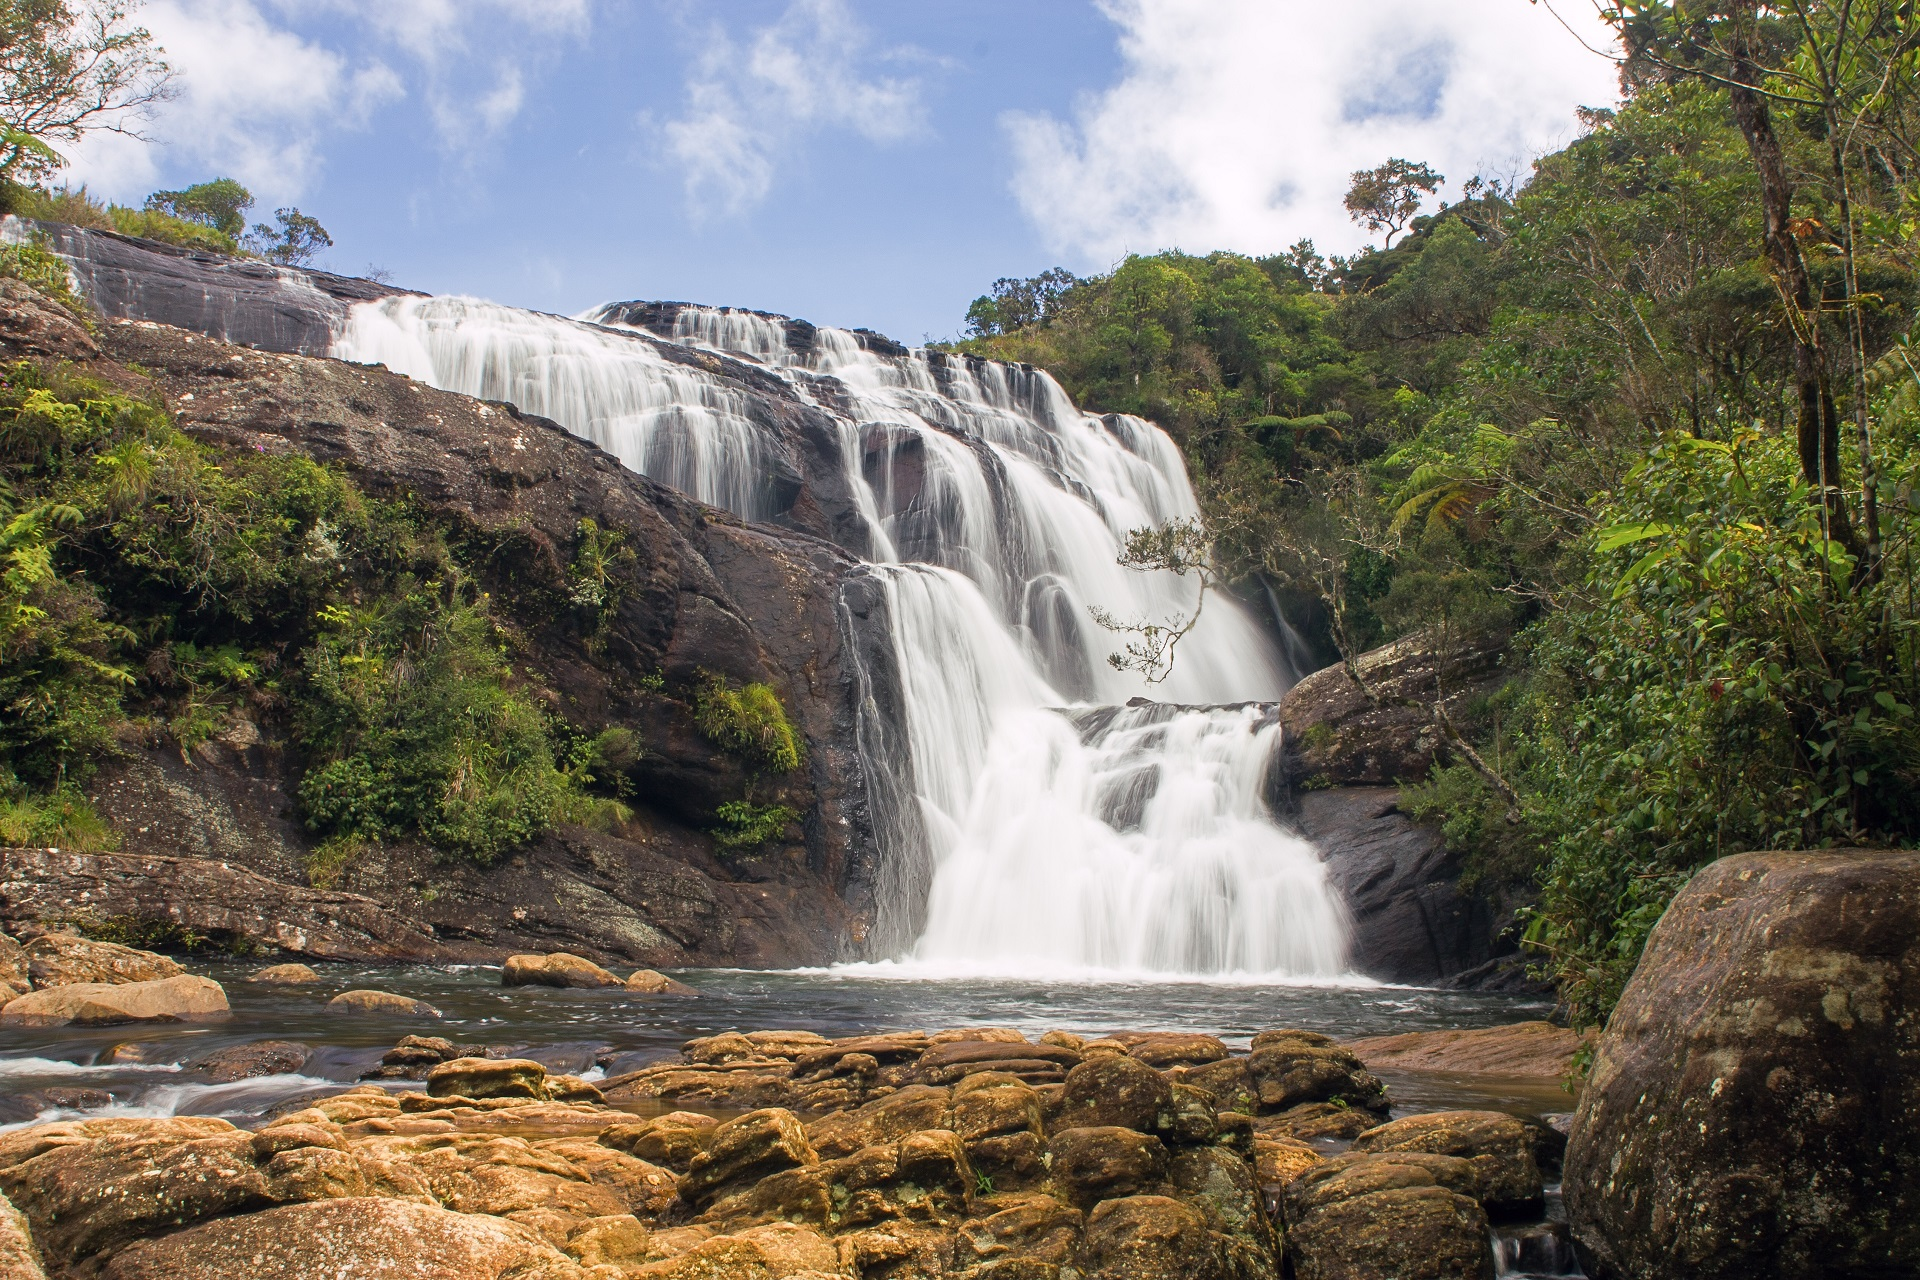 Baker's Falls in Horton Plains National Park